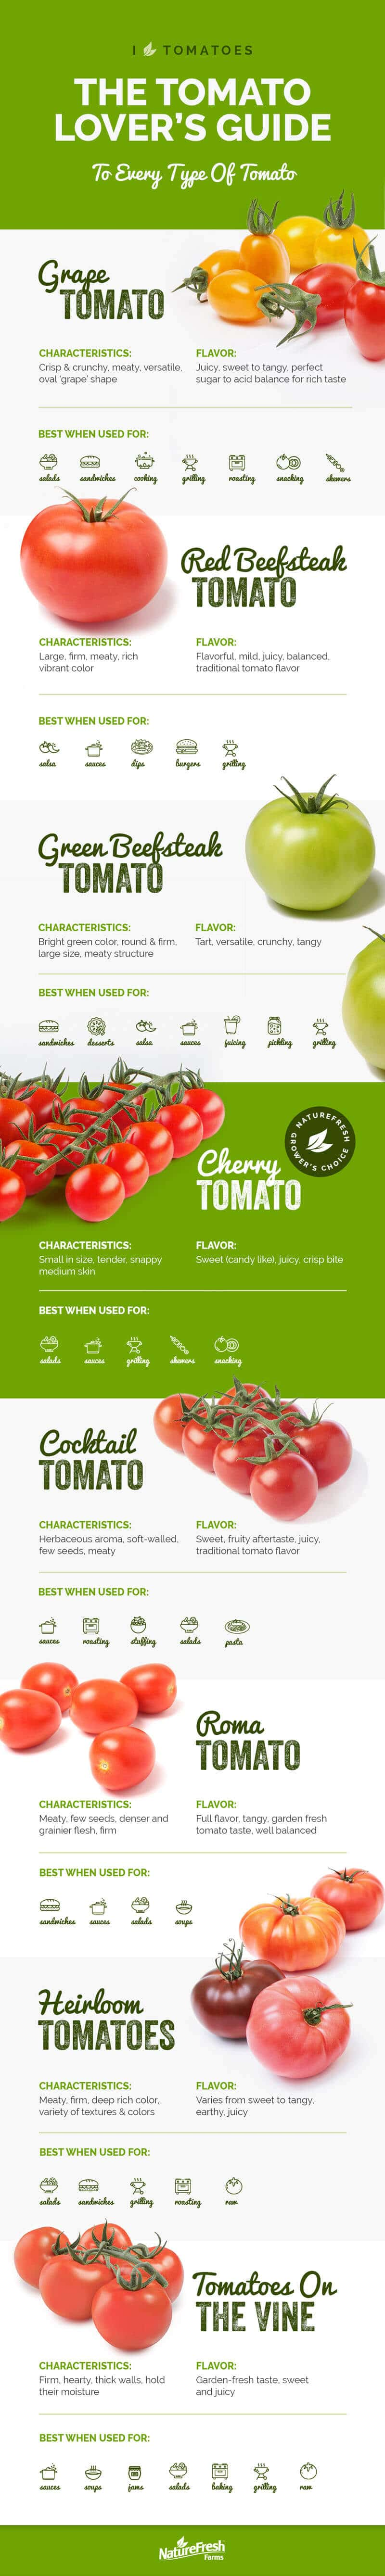 can dogs and cats eat tomatoes